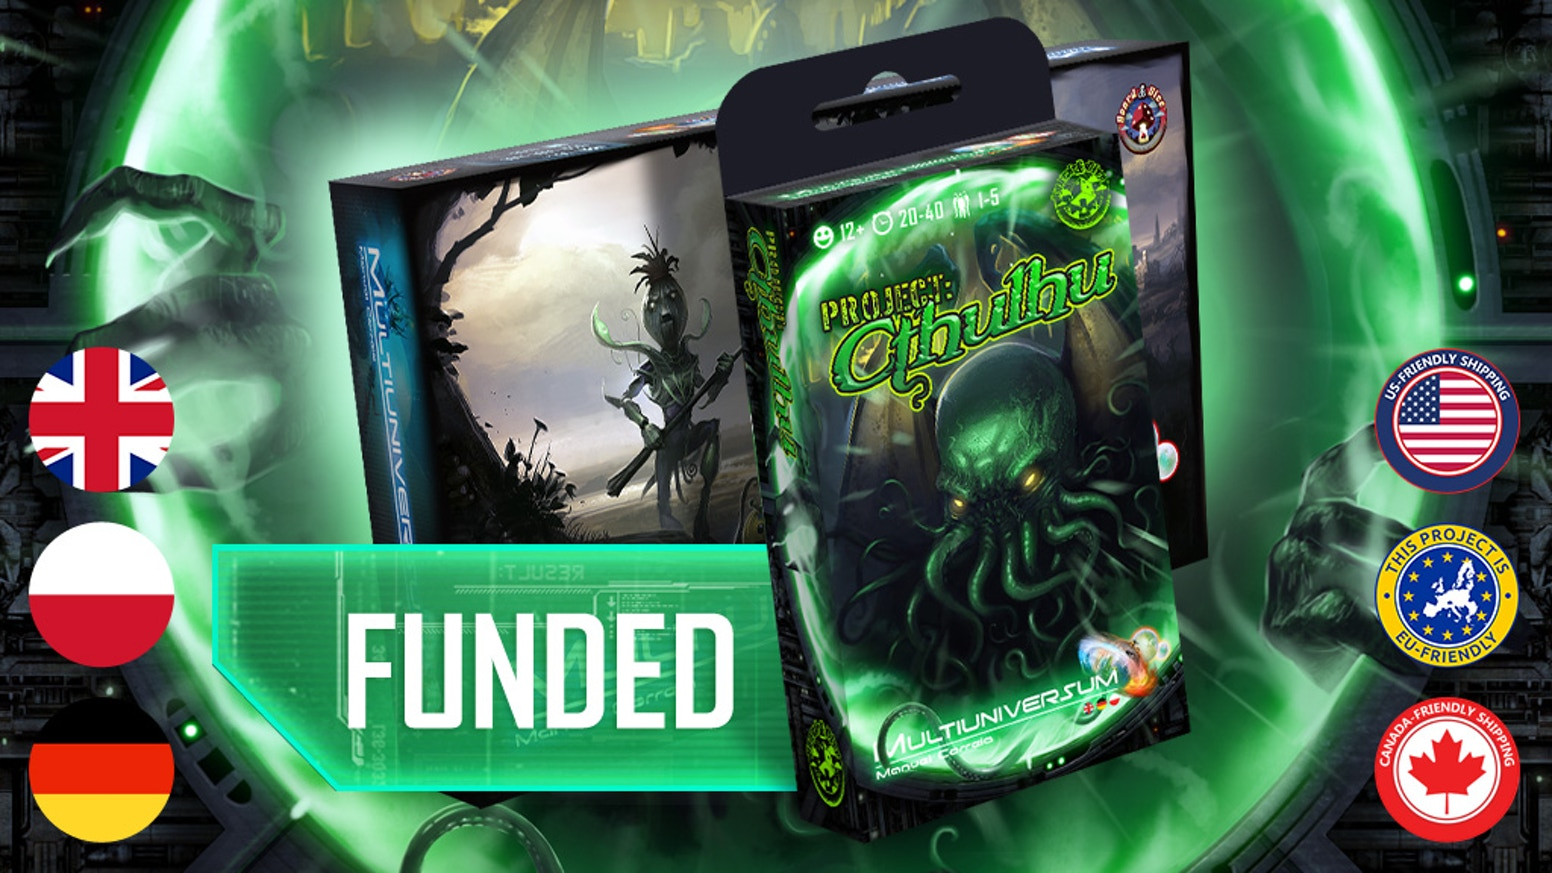 Multiuniversum is a card game, in which players use actions to do research at the Hadron Collider and close portals to other realities!